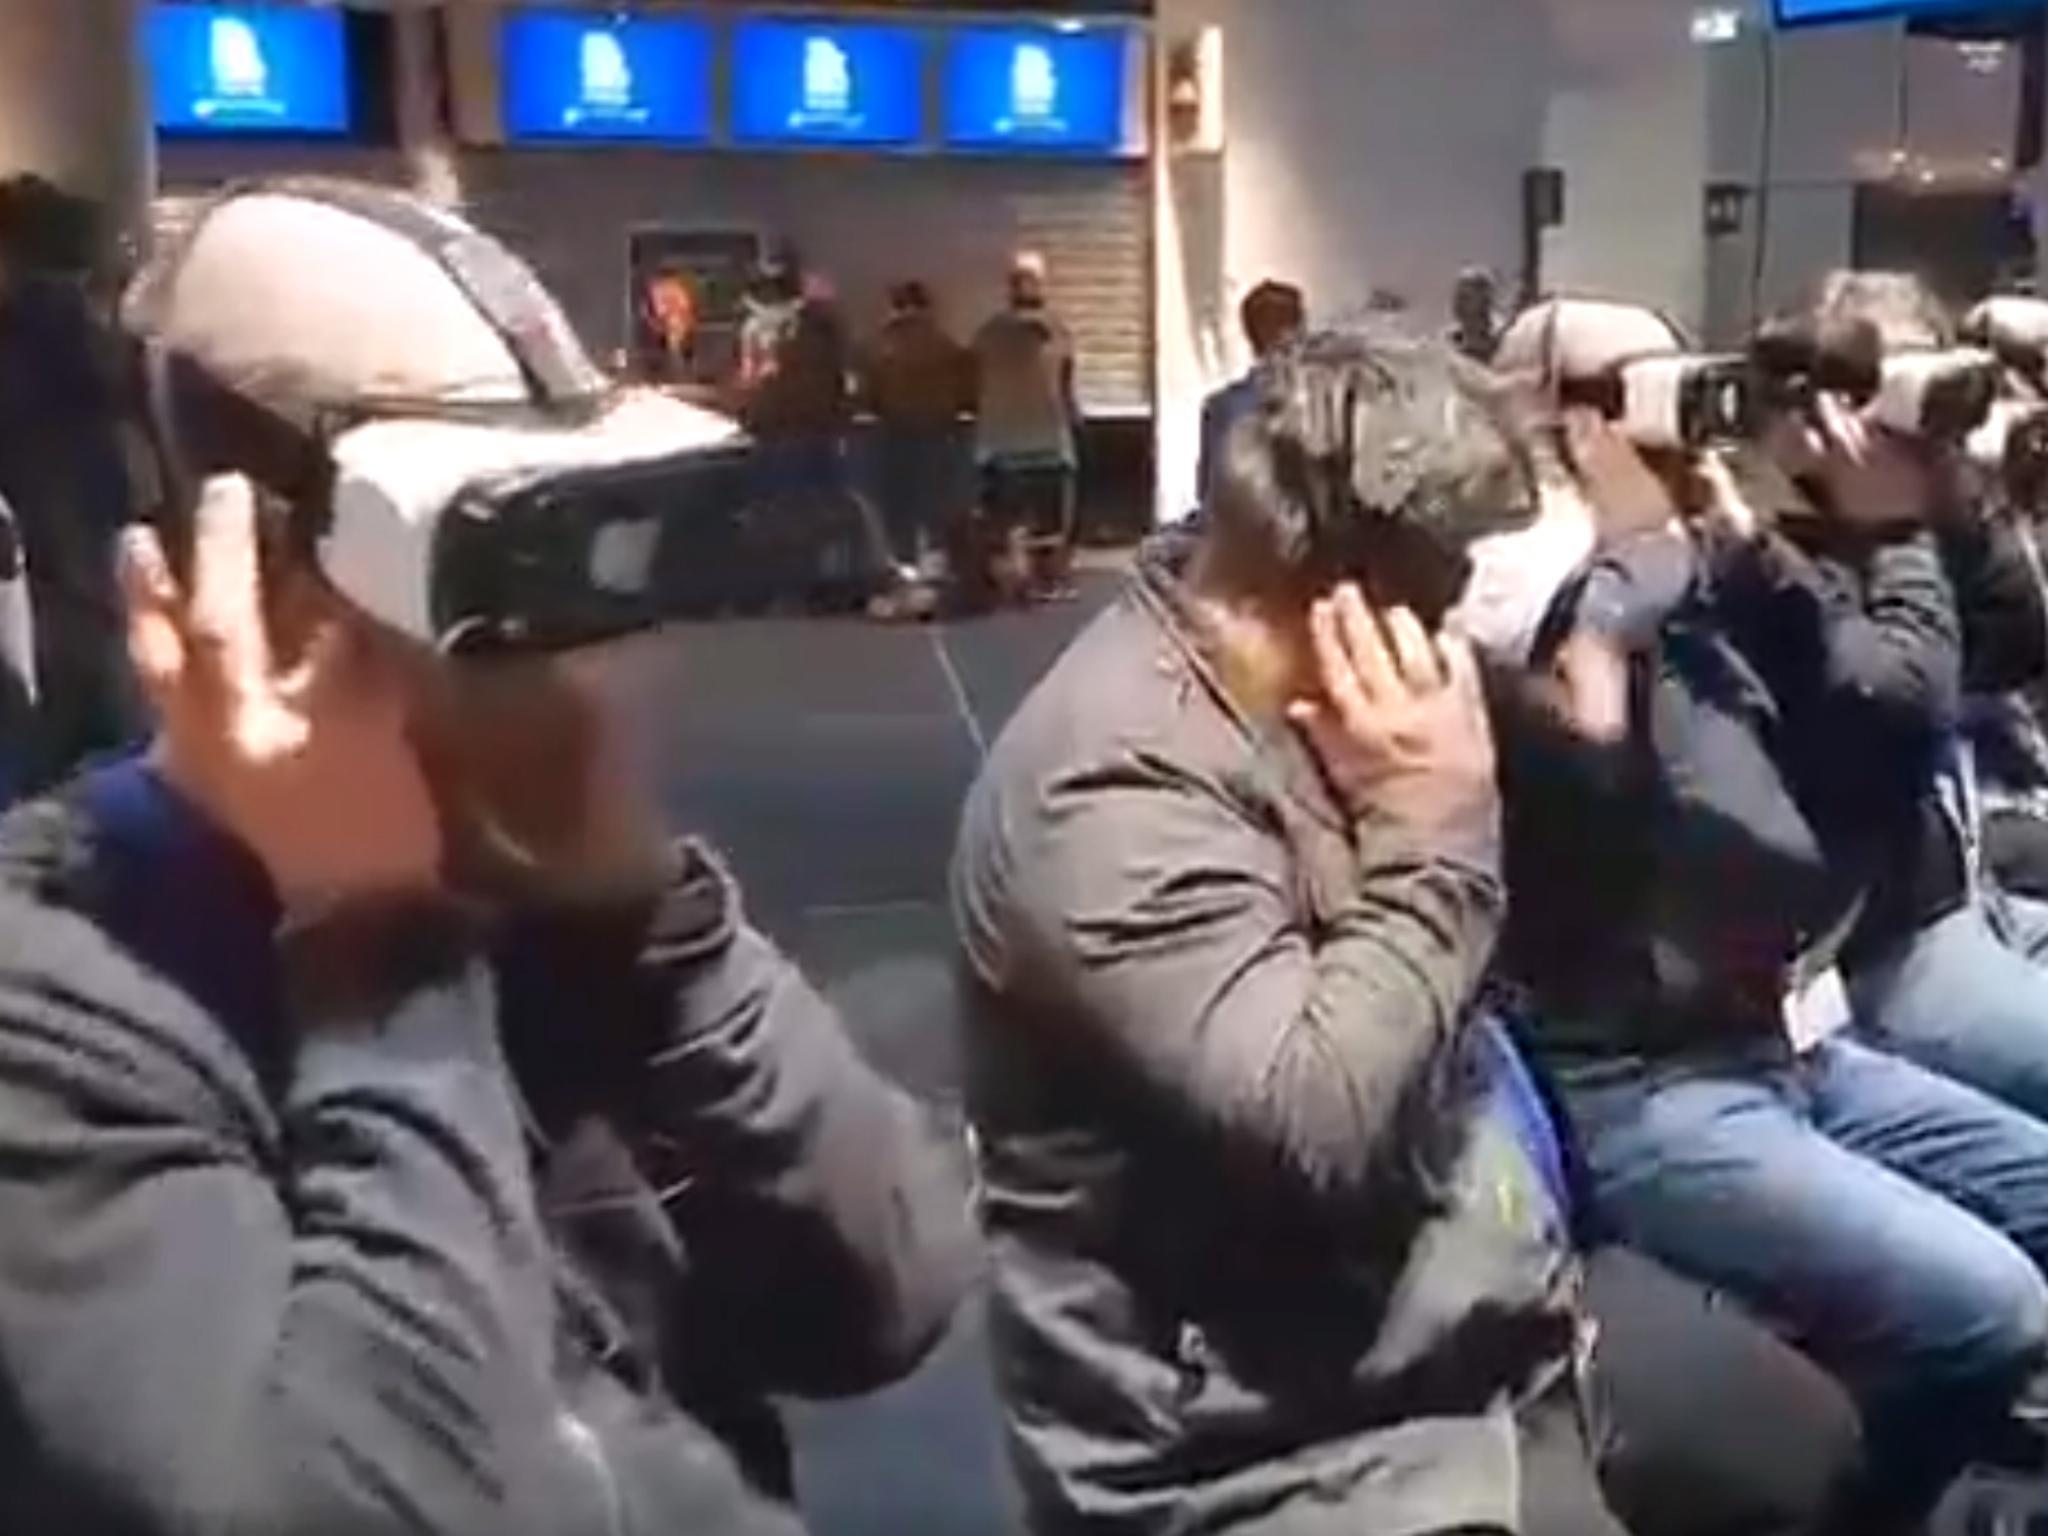 CEOs use VR headsets to experience 'realities' of homelessness